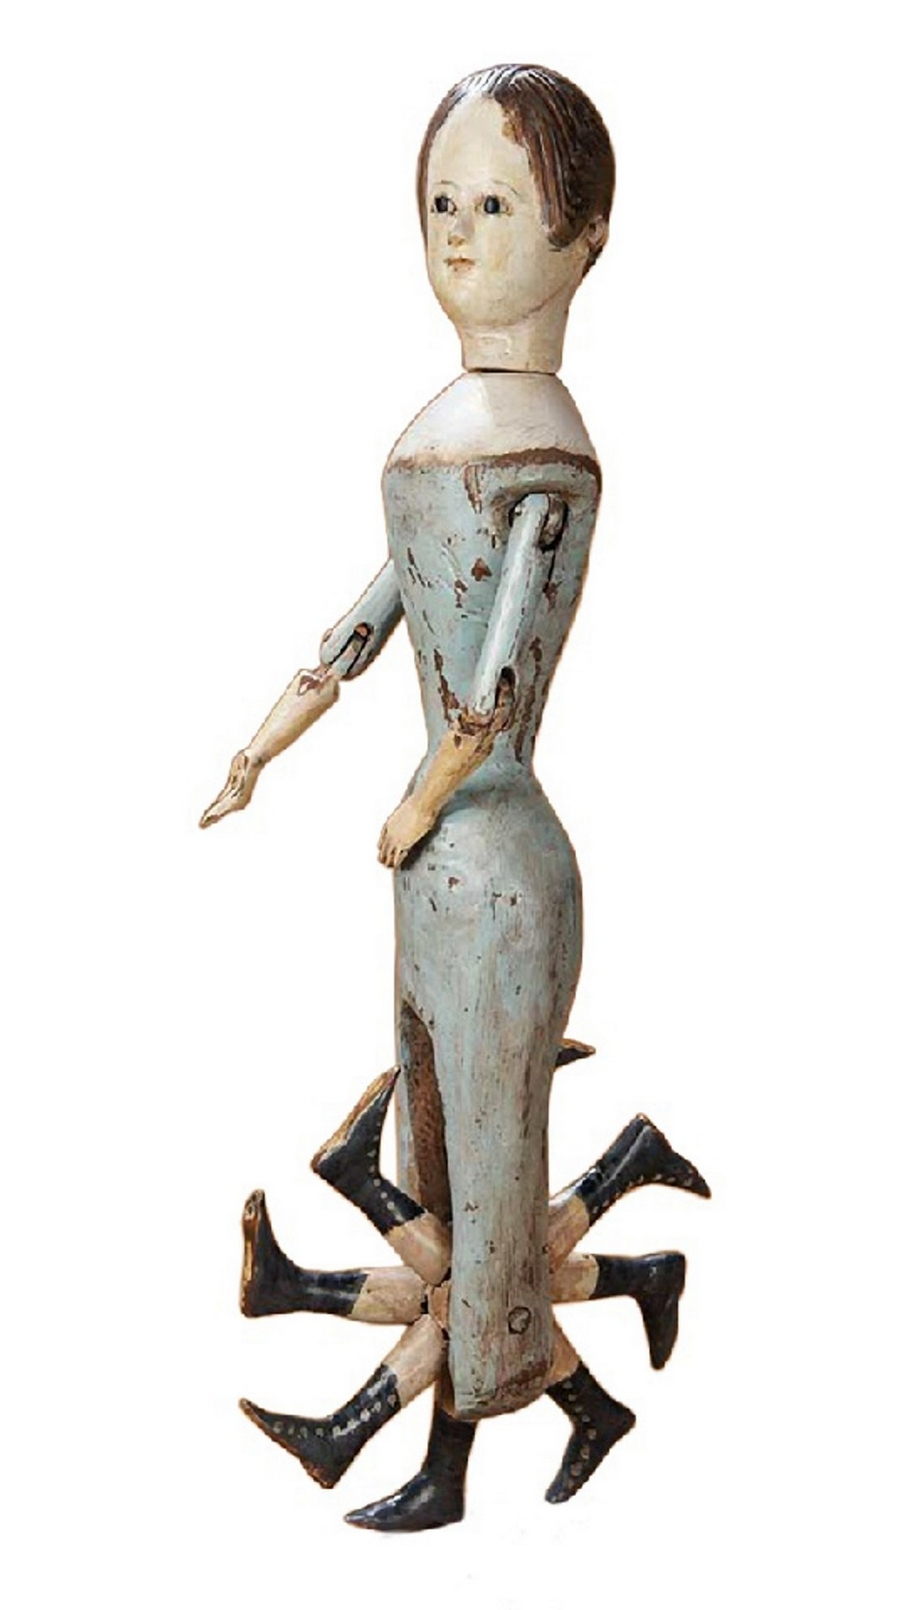 A wooden doll. Her legs have been replaced by a mechanical set of 8 shoes